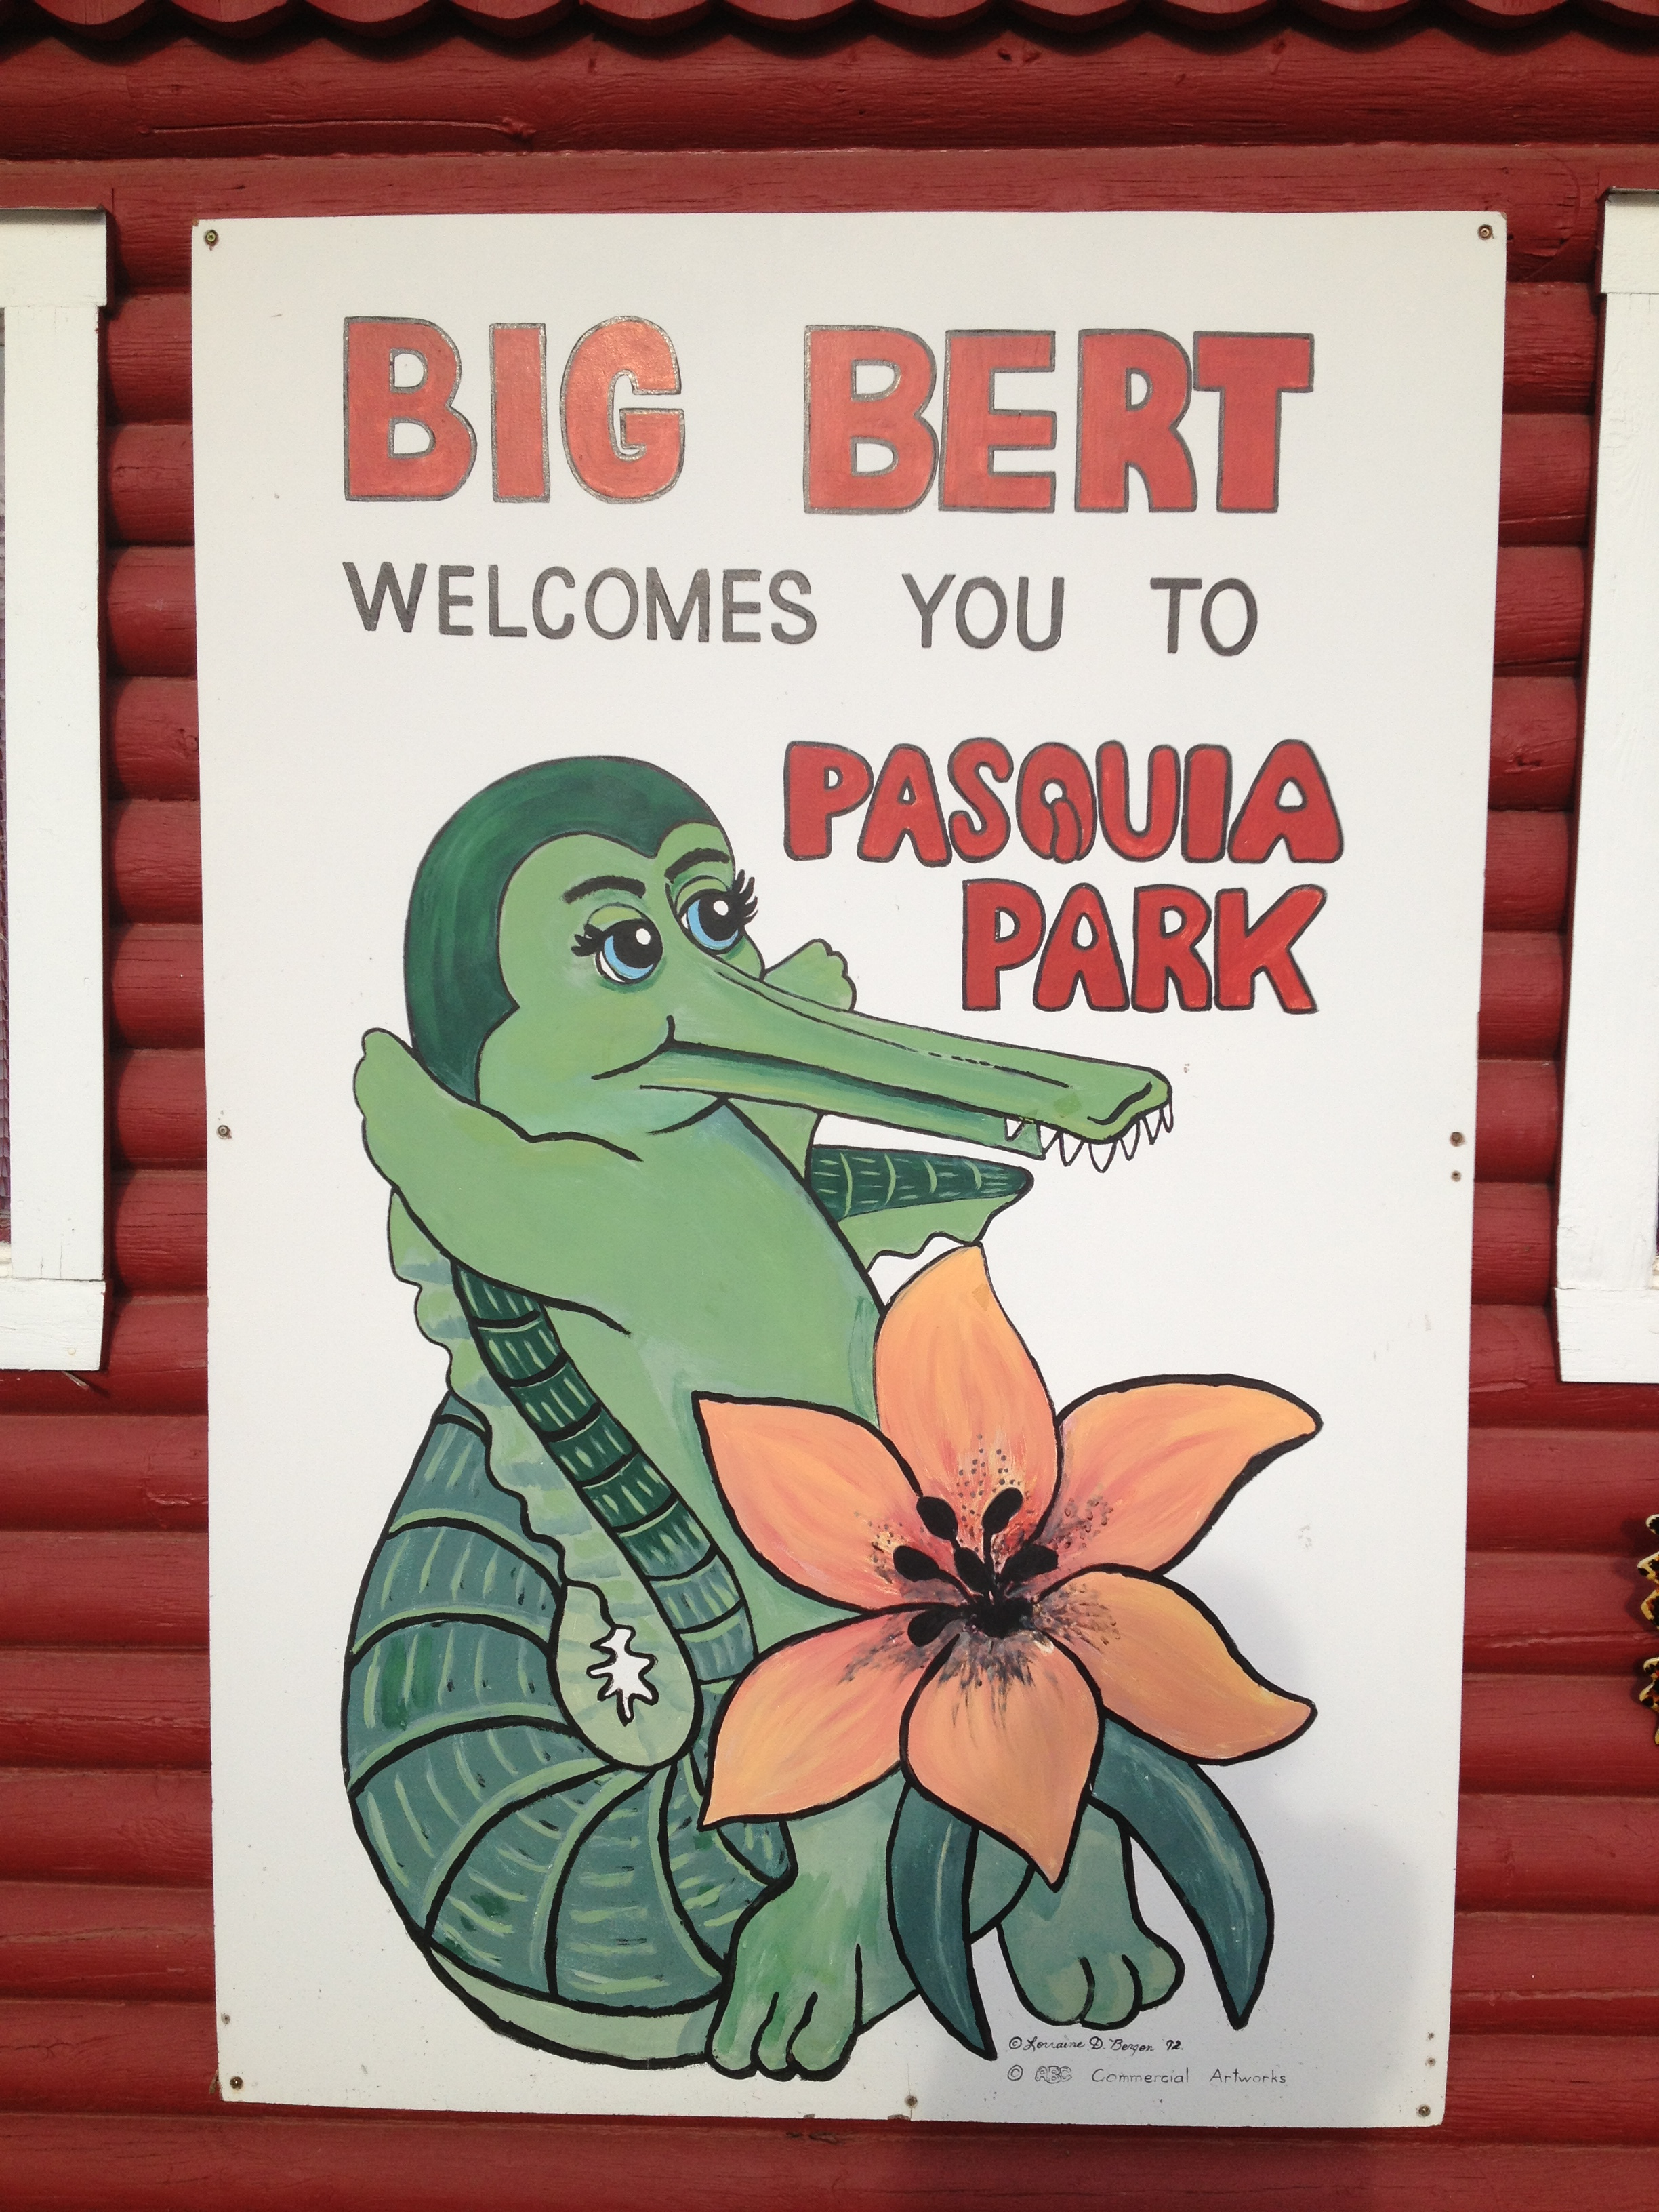 Big Bert Welcomes you to the Pasquia Regional Park